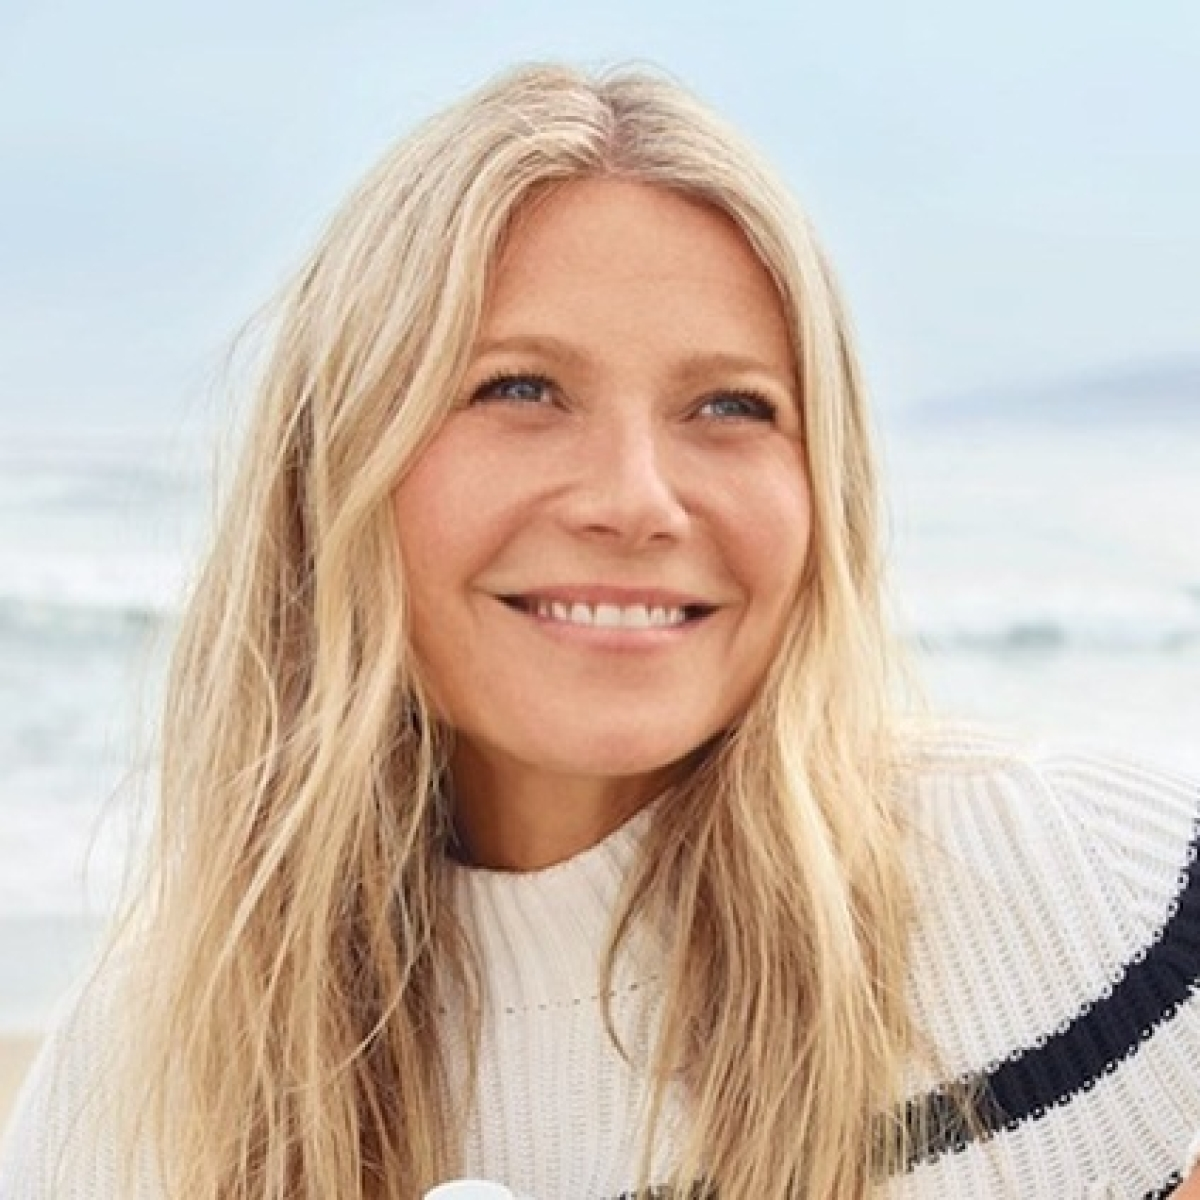 After vagina scented candles, Gwyneth Paltrow adds 'this smells like my orgasm' candle to her collection